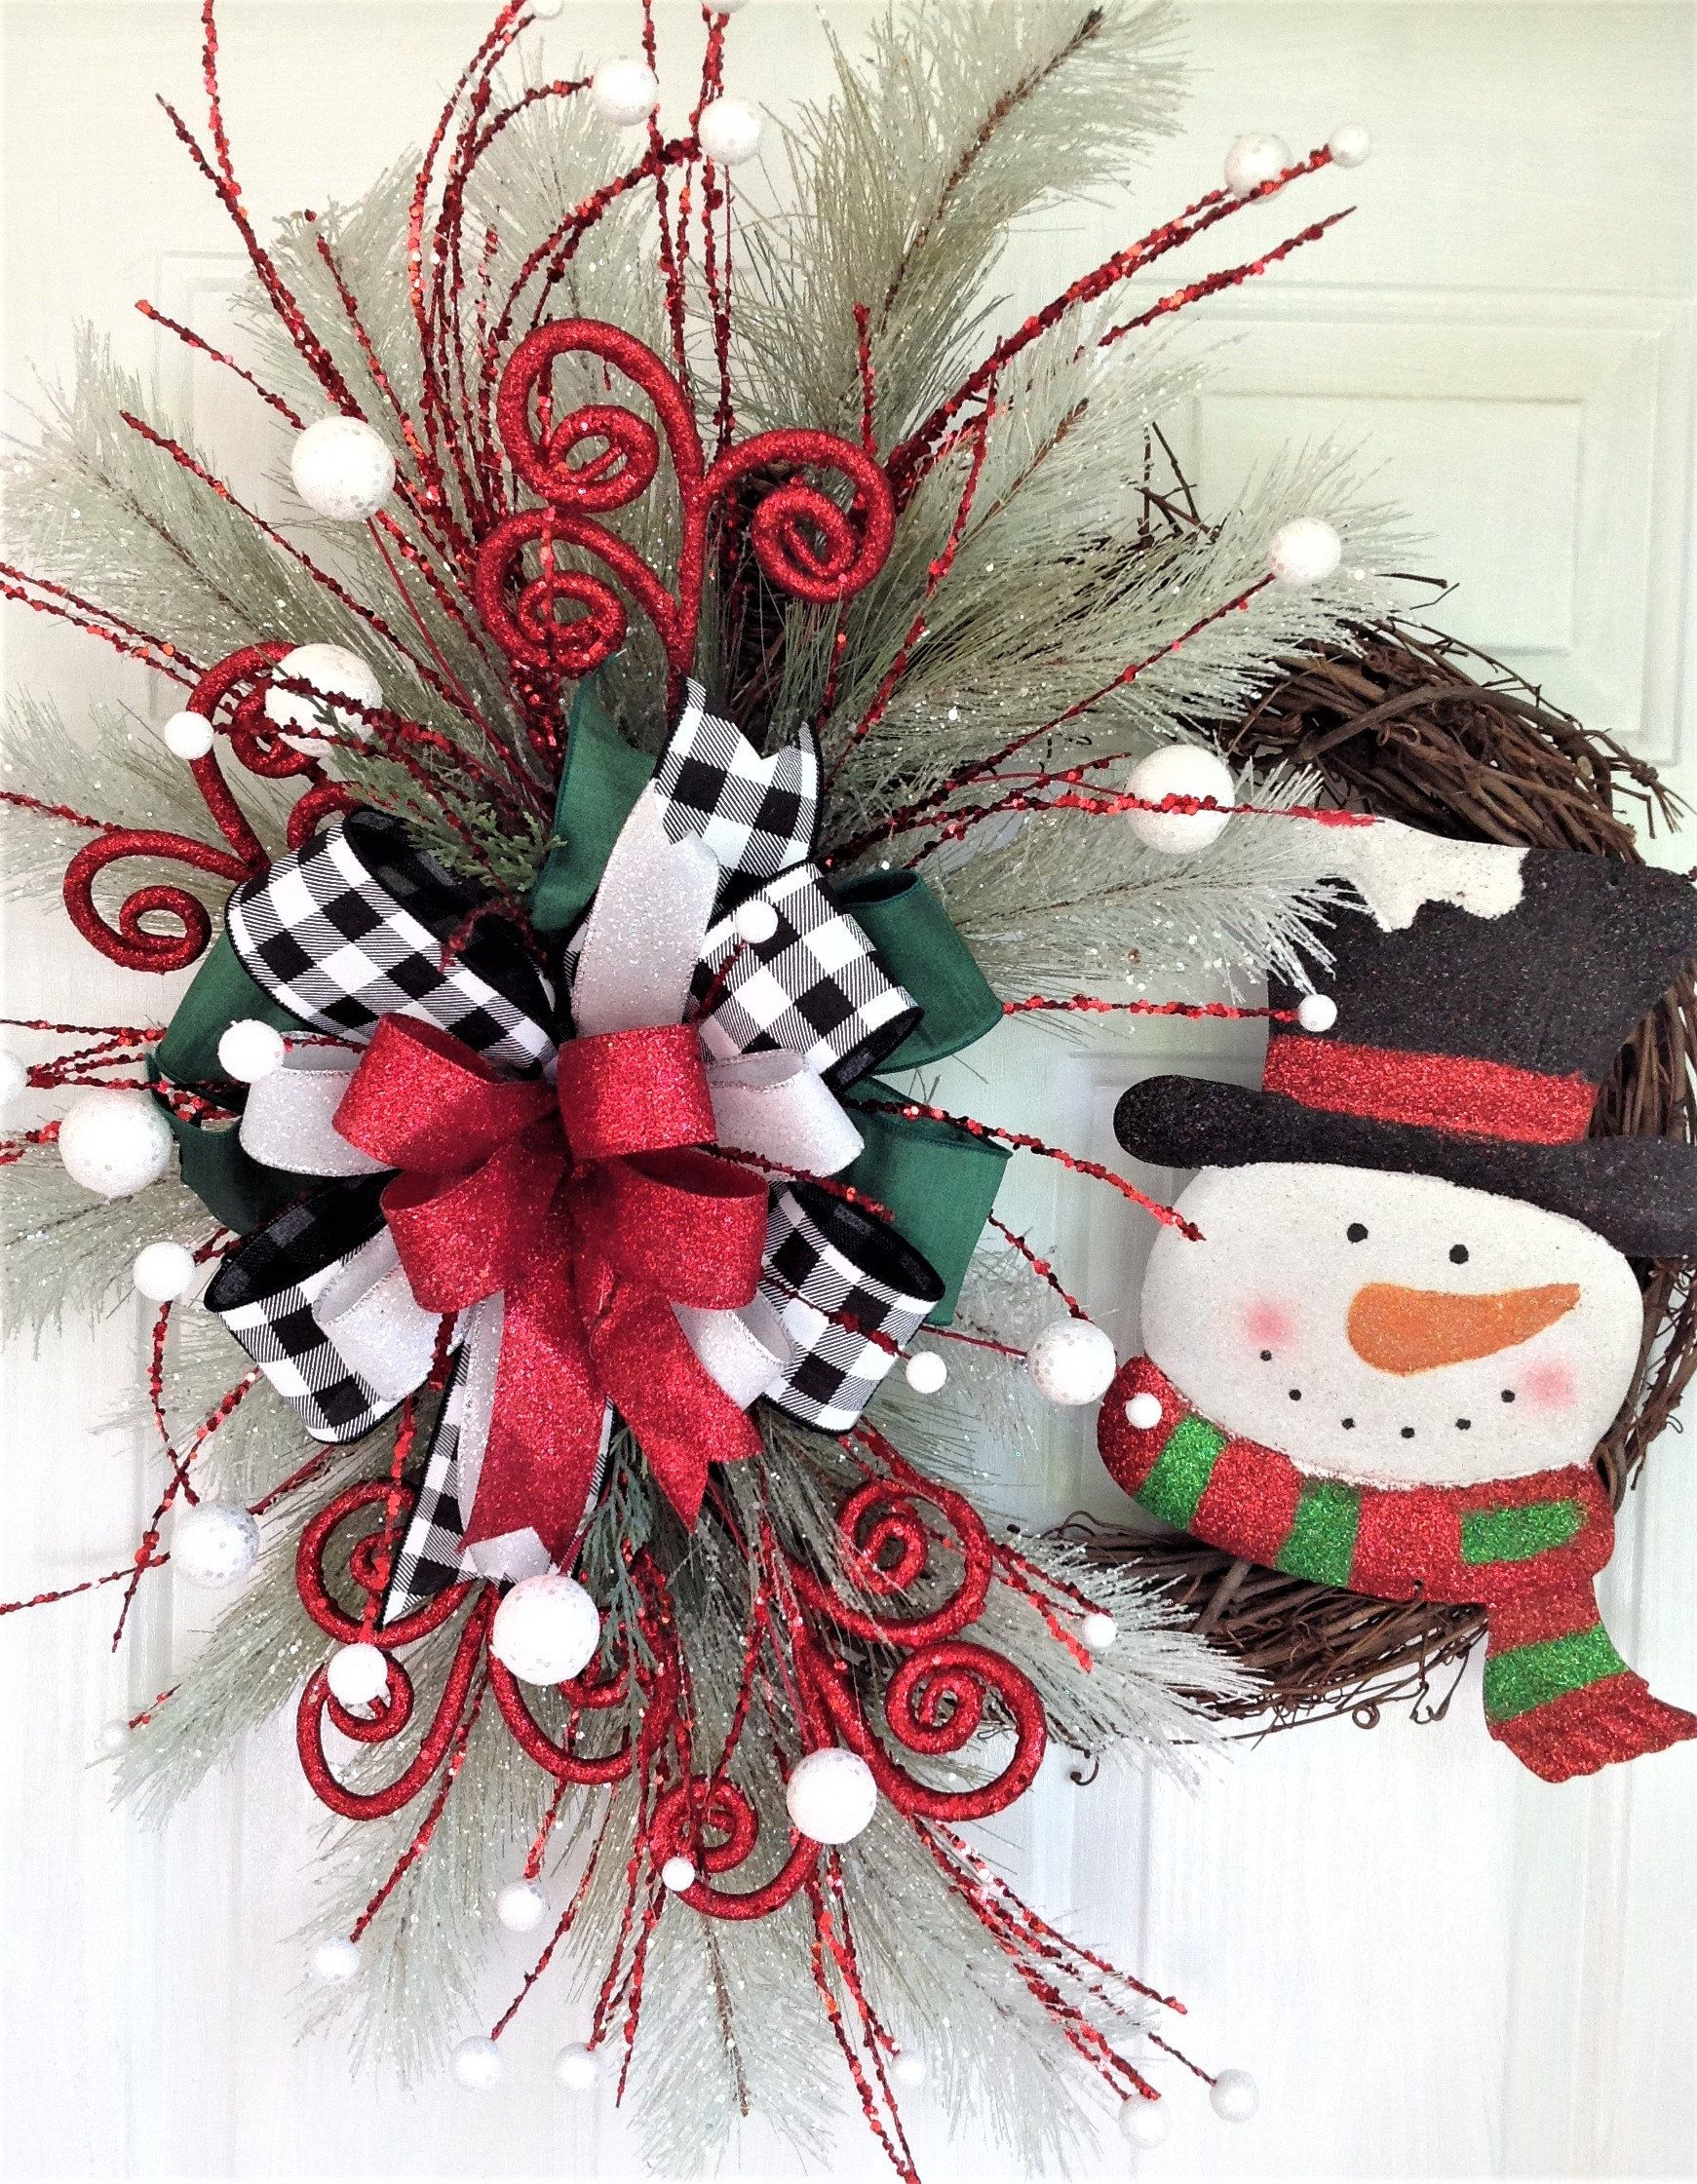 Christmas Snowman Wreath For Front Door, Christmas Grapevine Wreath, Holiday Wreath With Snowman, Snowman Door Decor, Christmas Door Hanger #halloweendoordecorations